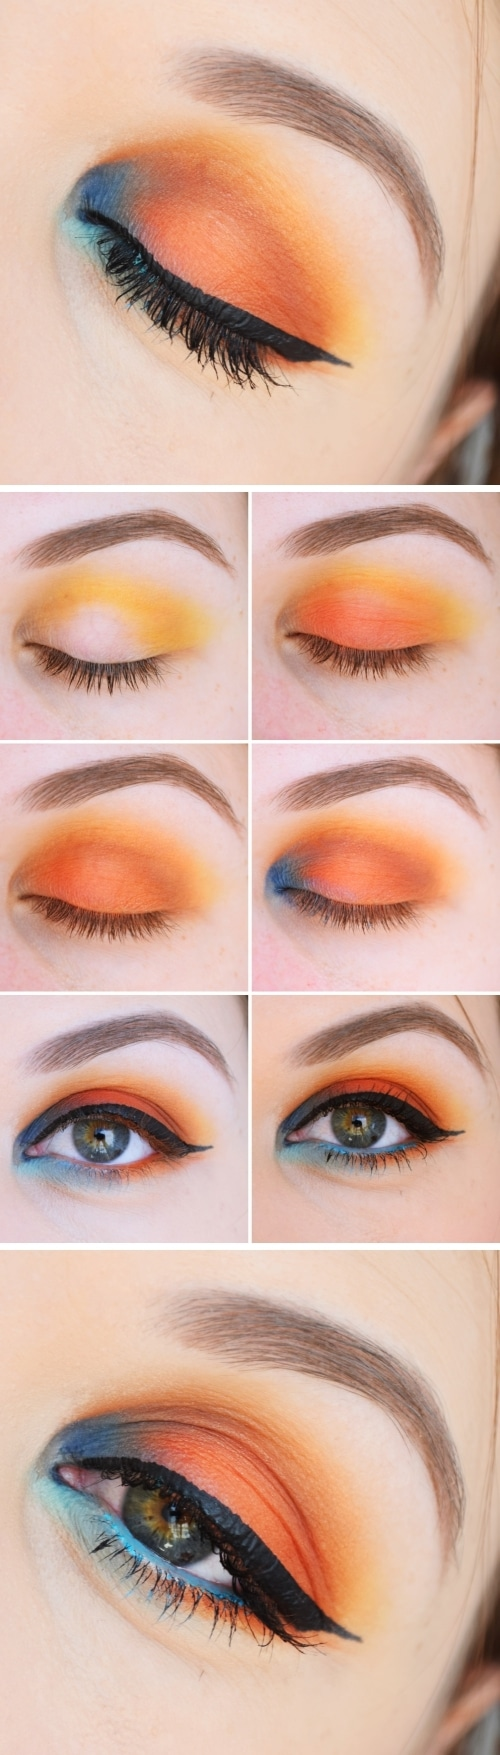 tutoriel maquillage orange bleu